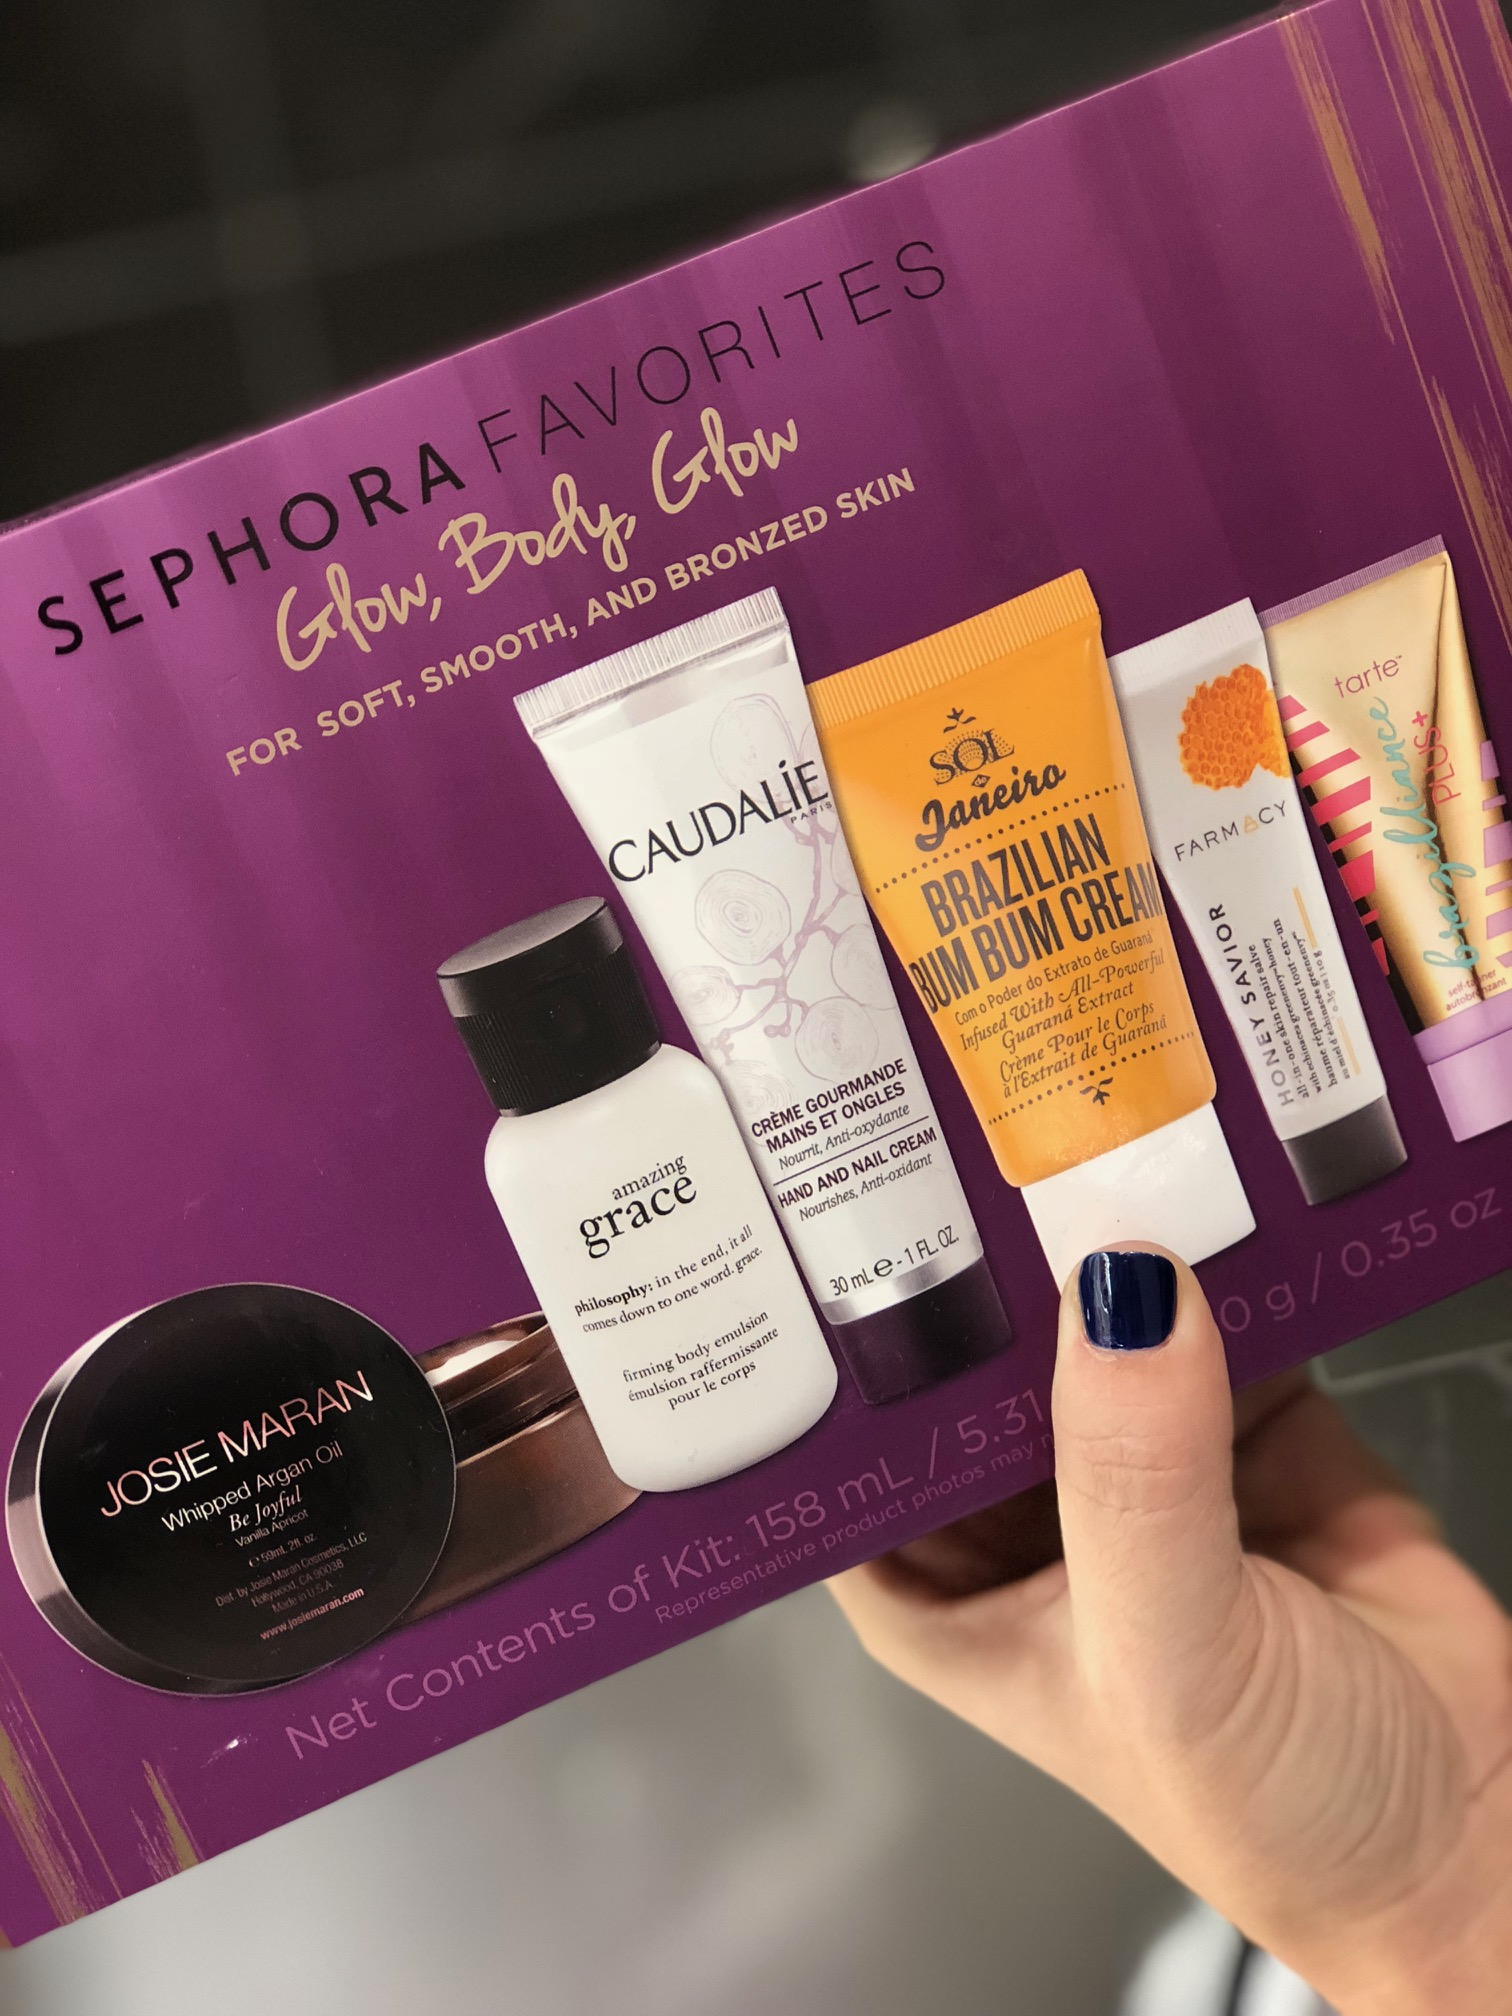 10 last-minute beauty gifts at Sephora in JCPenney Glow Body Blow set | Sponsor